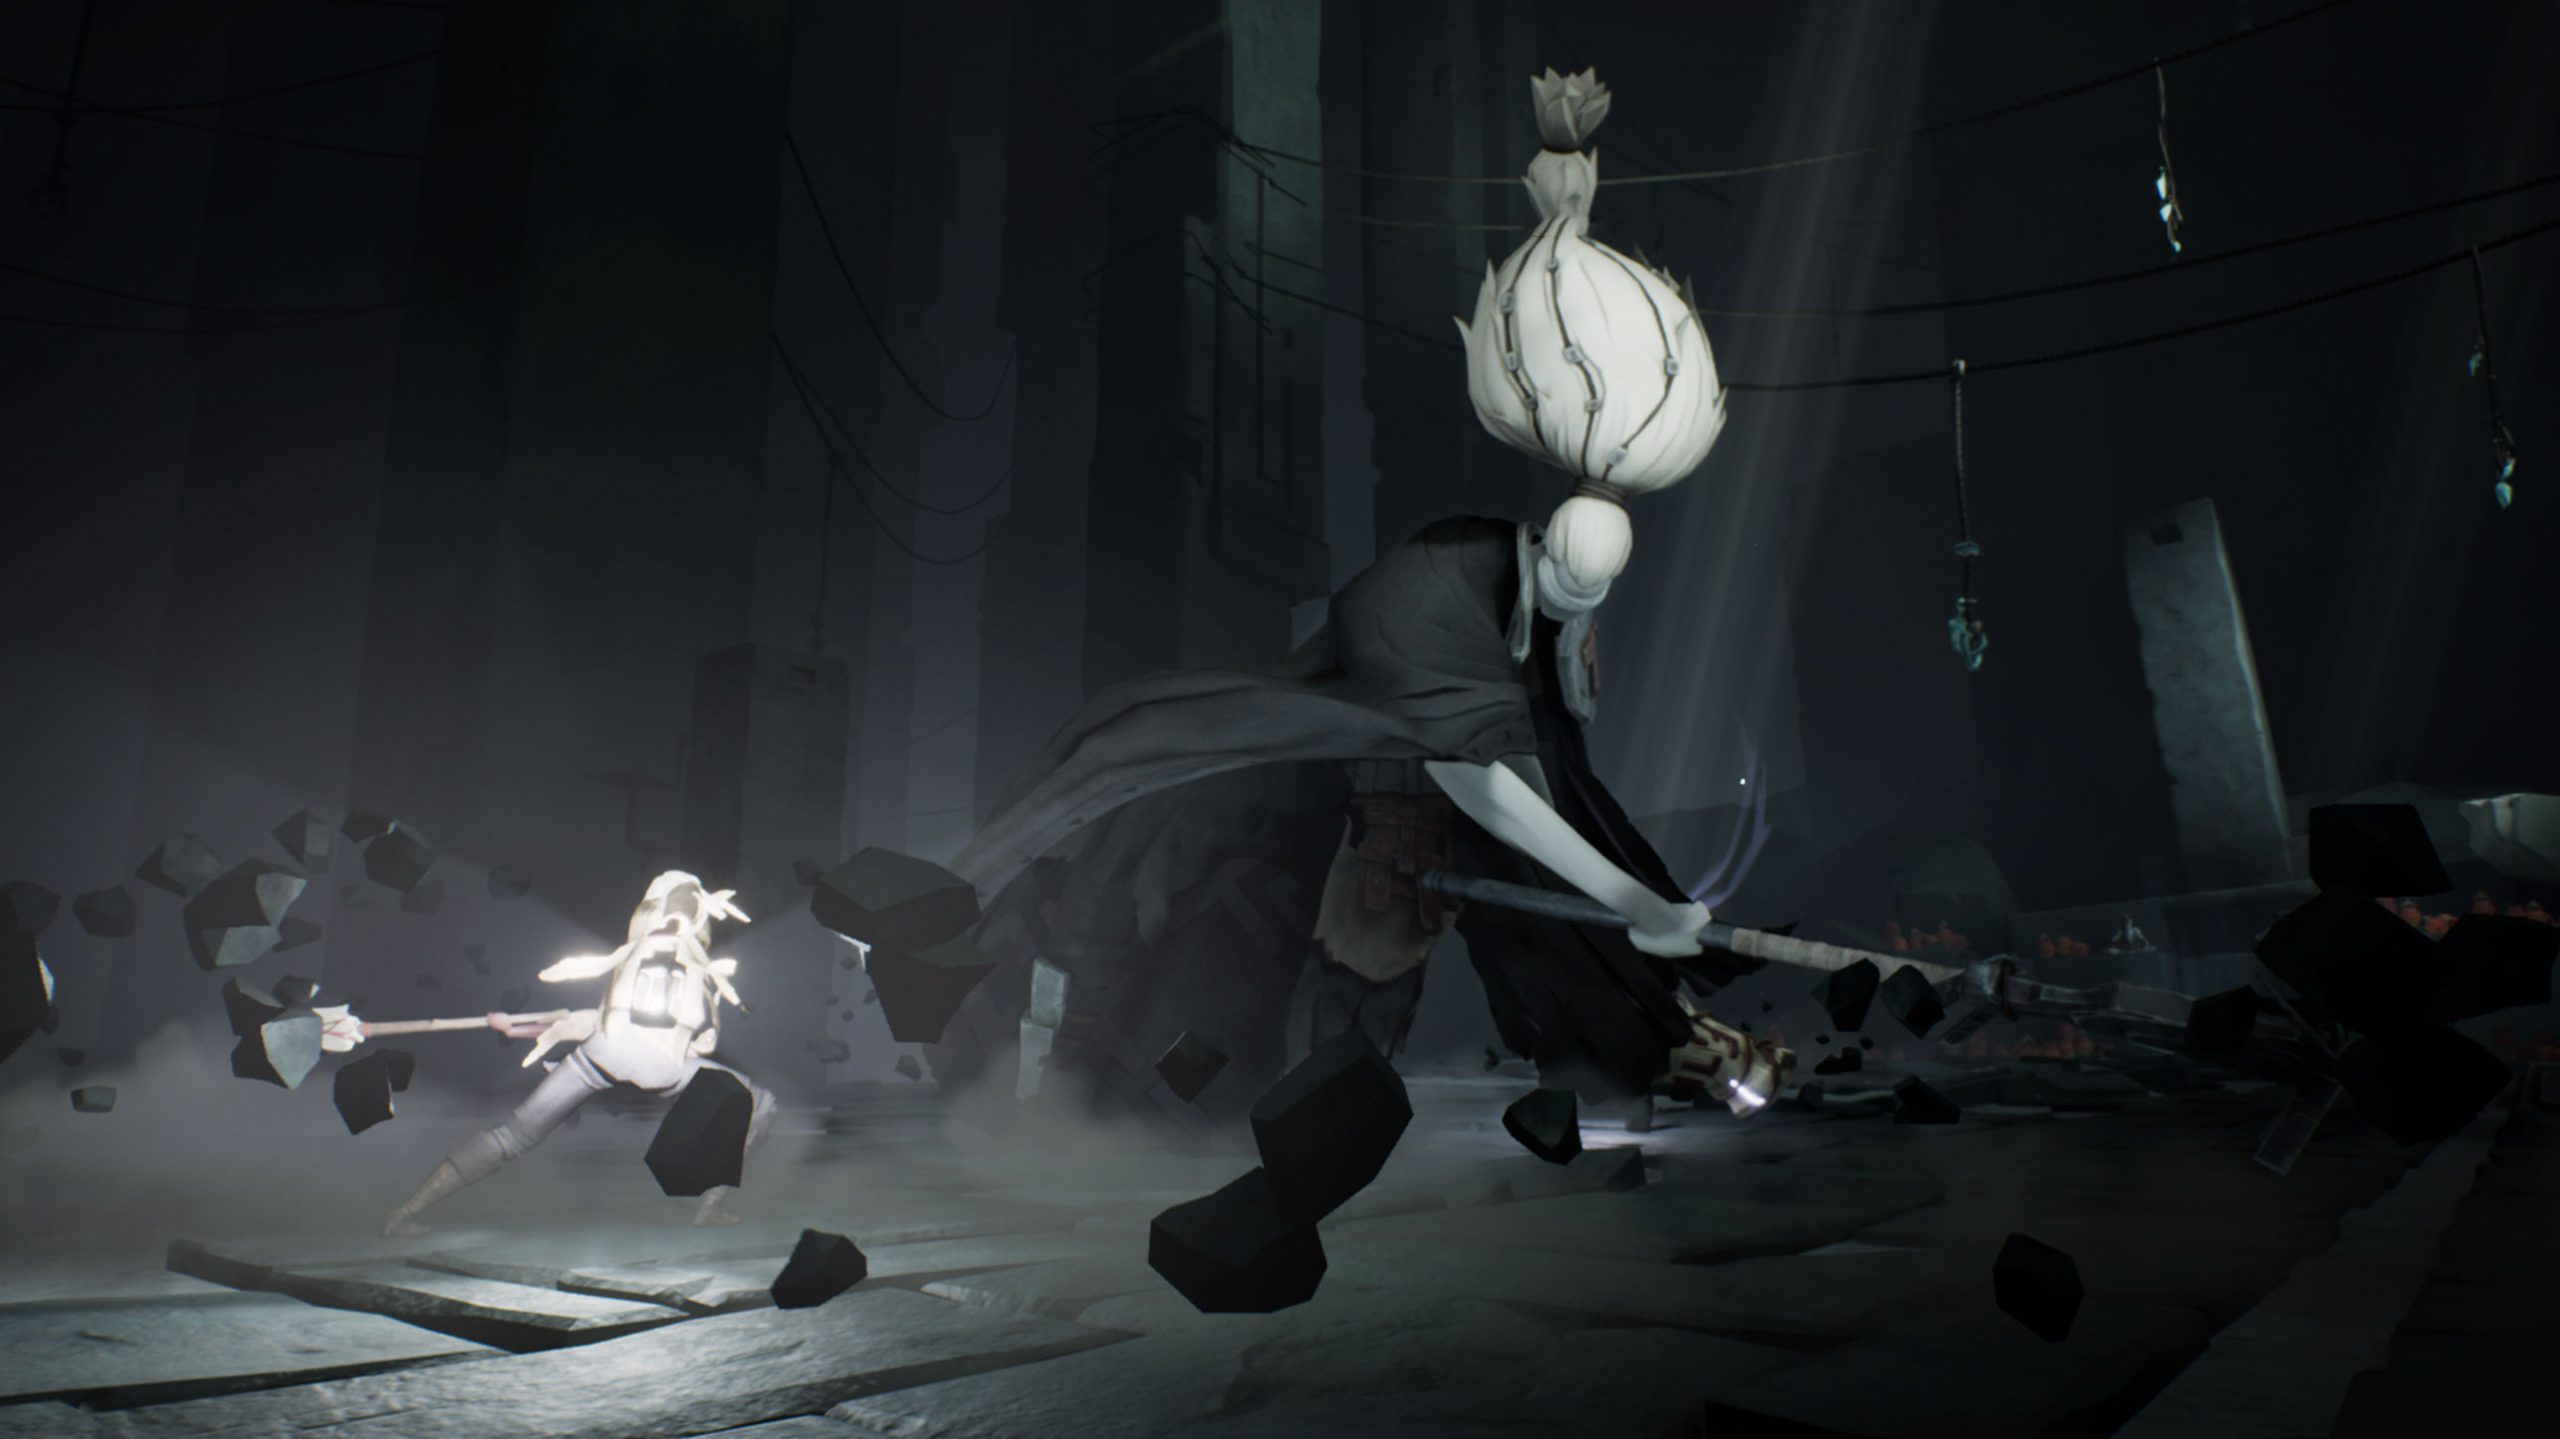 Ashen review - Soft Visuals and Sounds